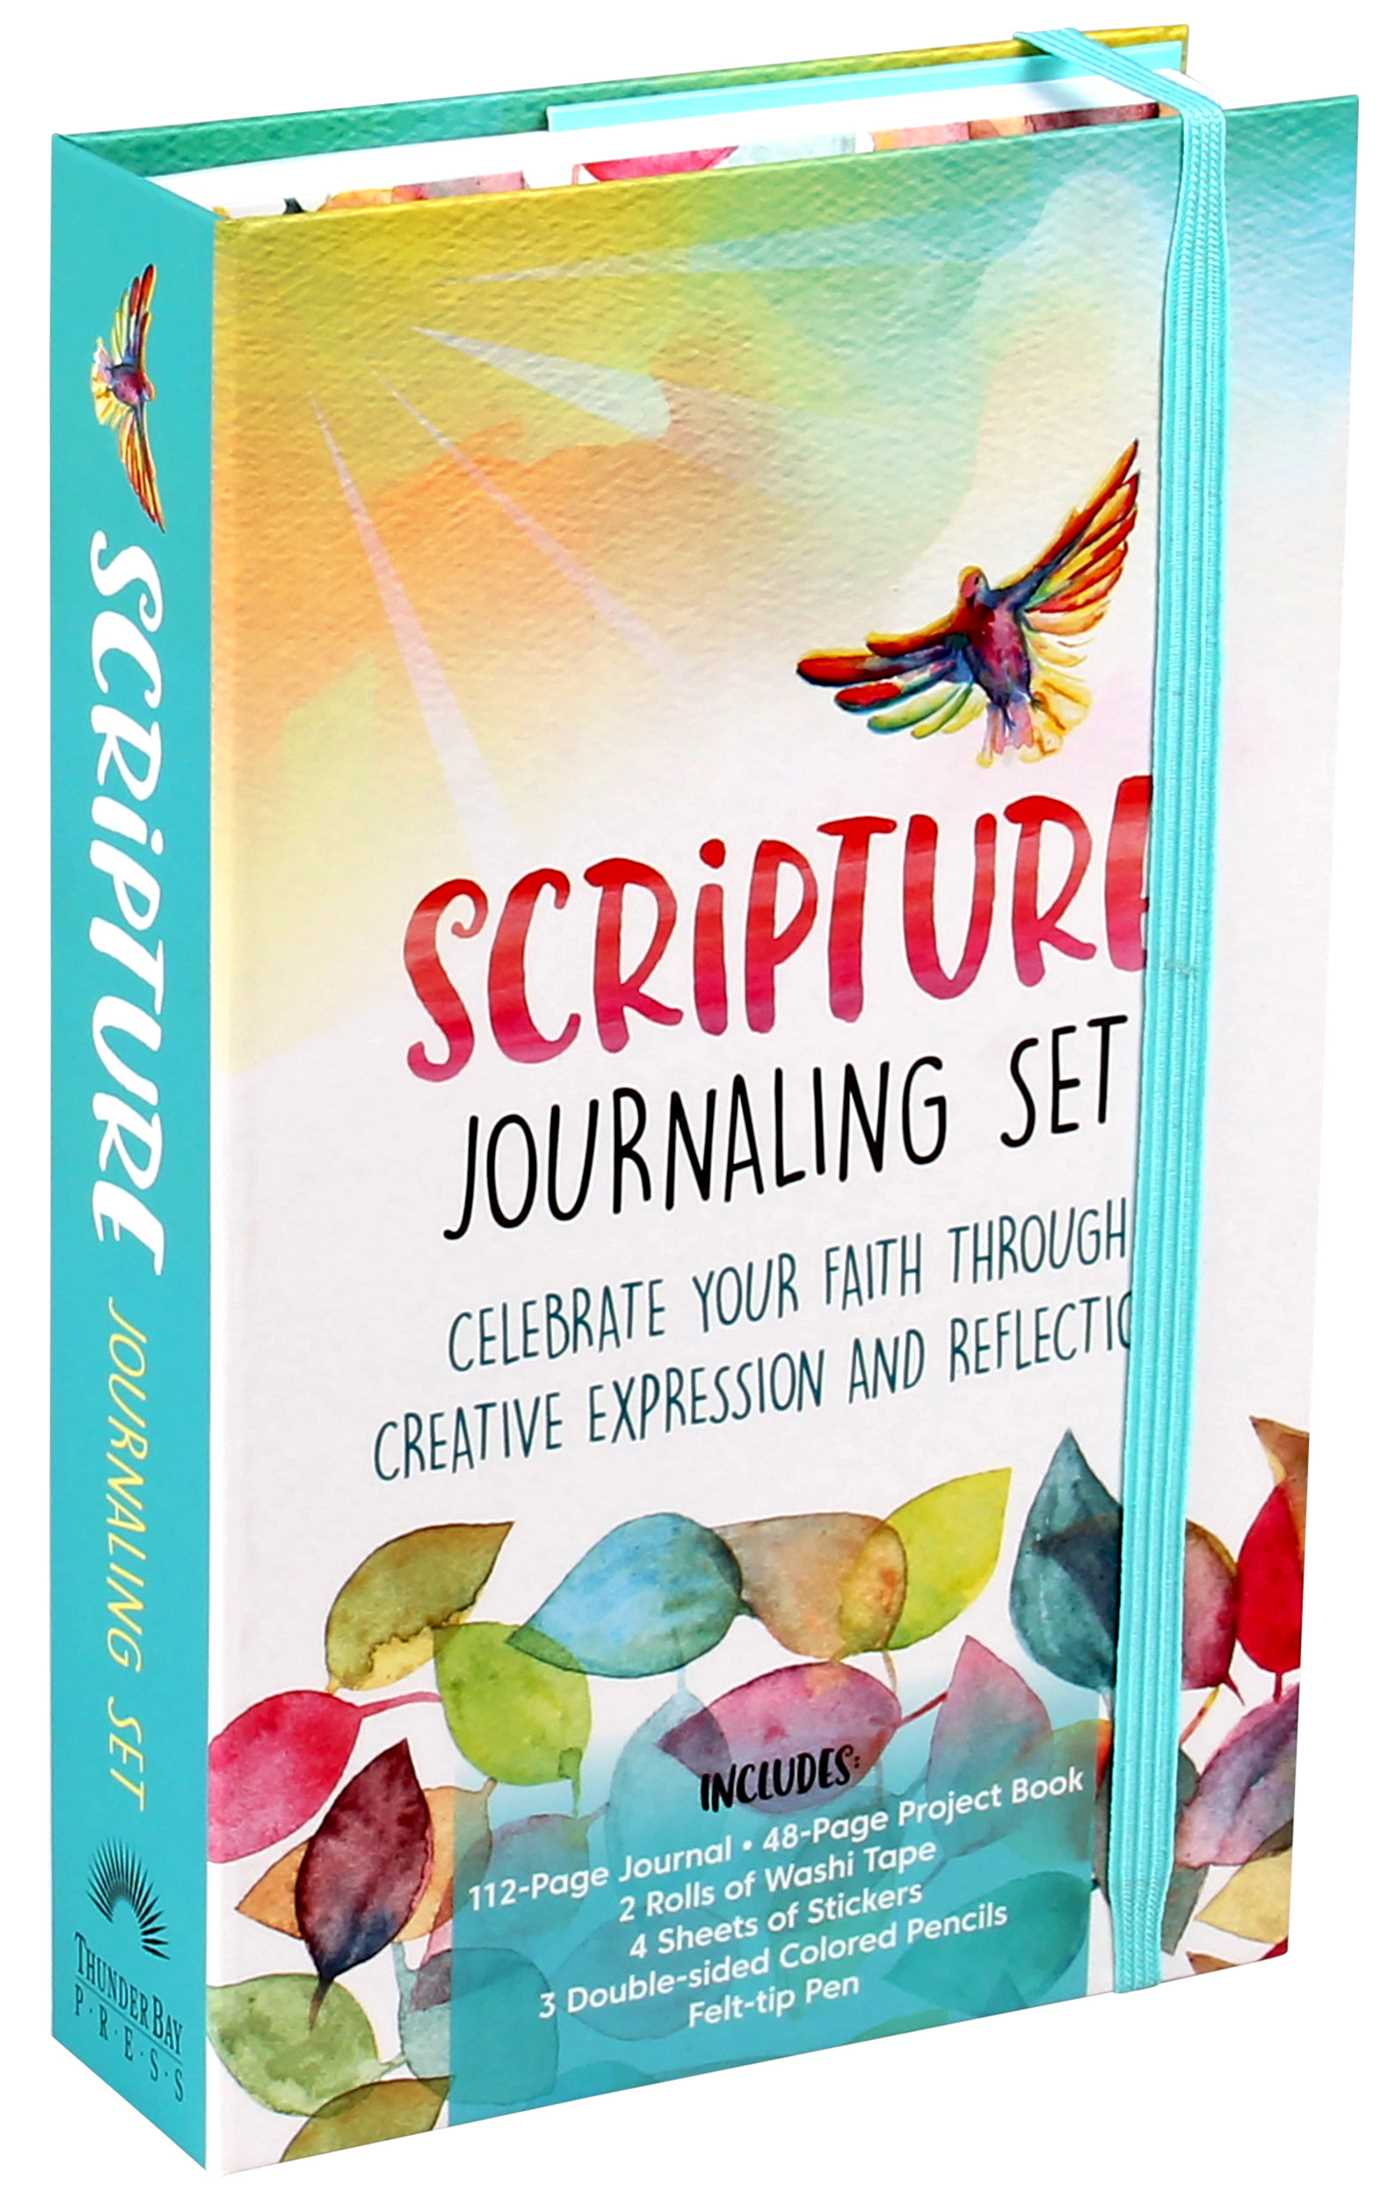 Scripture journaling set 9781684124206 hr